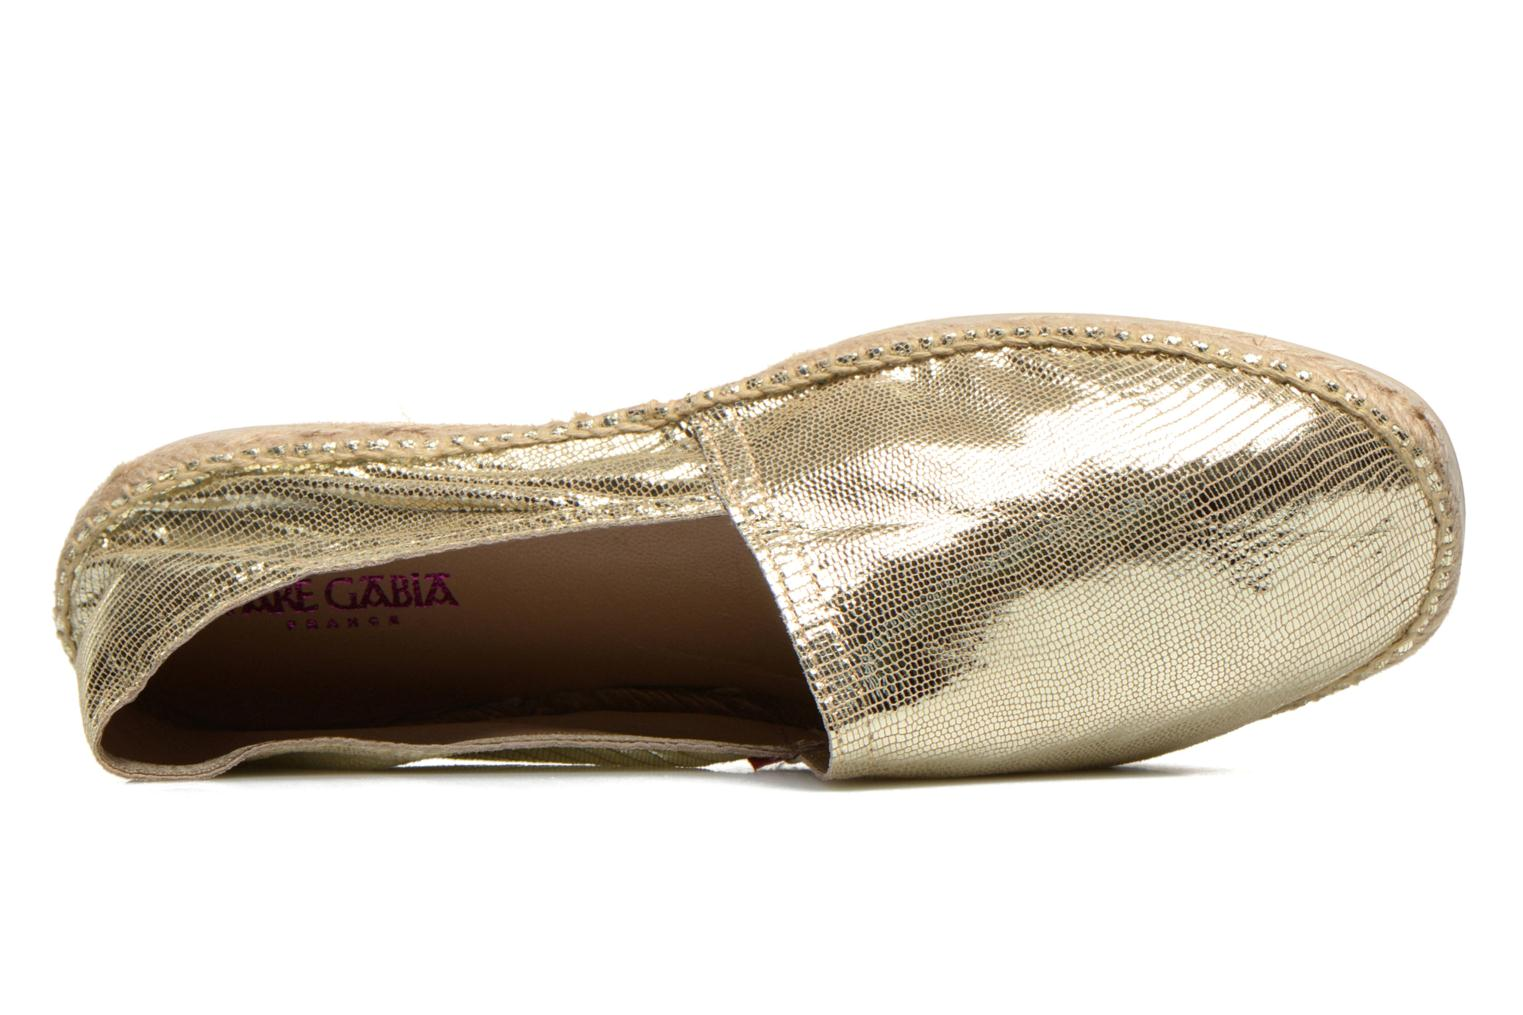 Espadrilles Pare Gabia VP Cuir Bronze and Gold view from the left